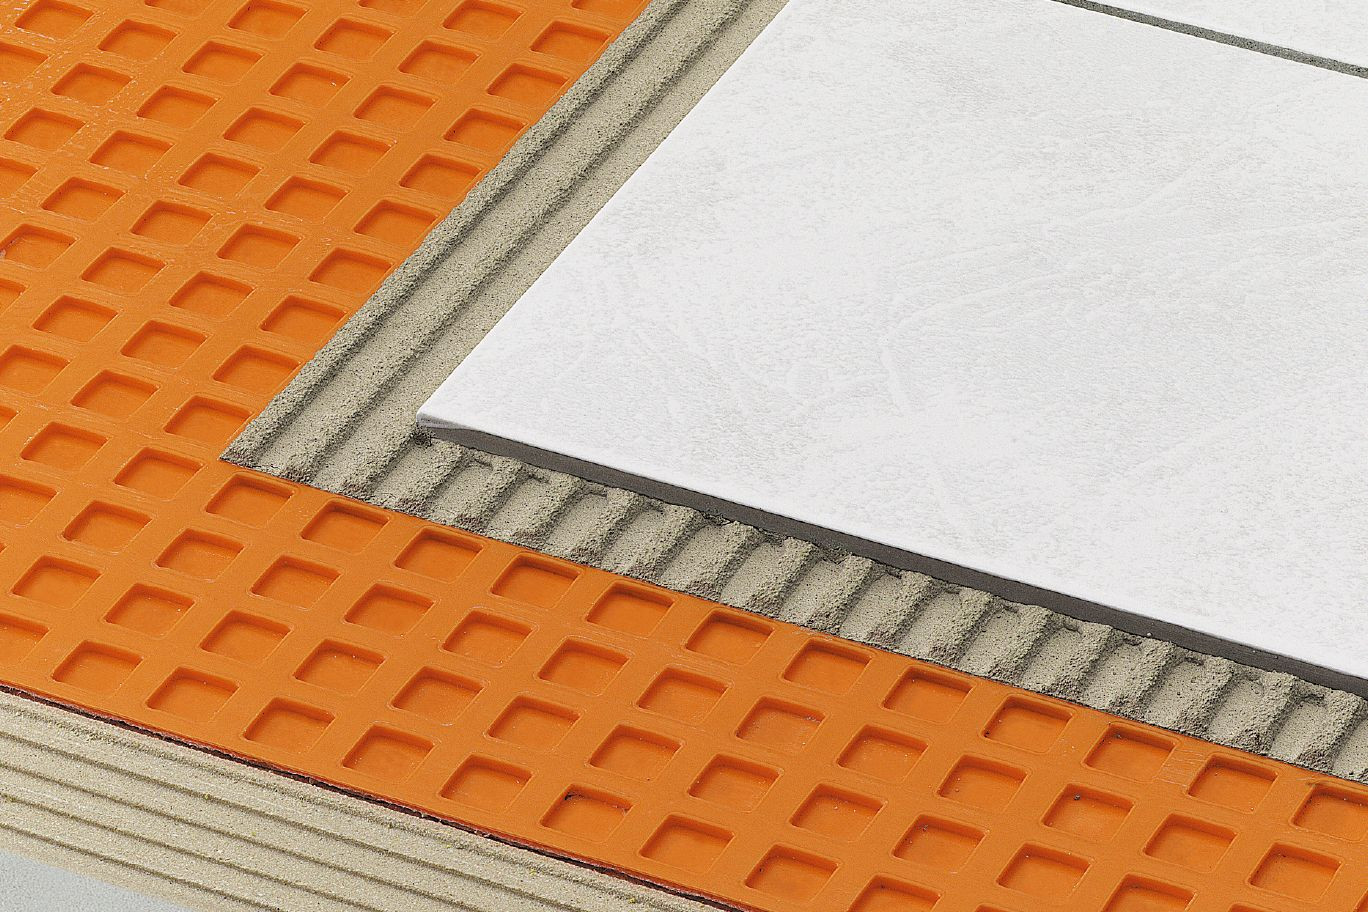 tile and hardwood floor combinations of schlutera ditra ditra xl uncoupling ditra membranes for schlutera ditra ditra xl